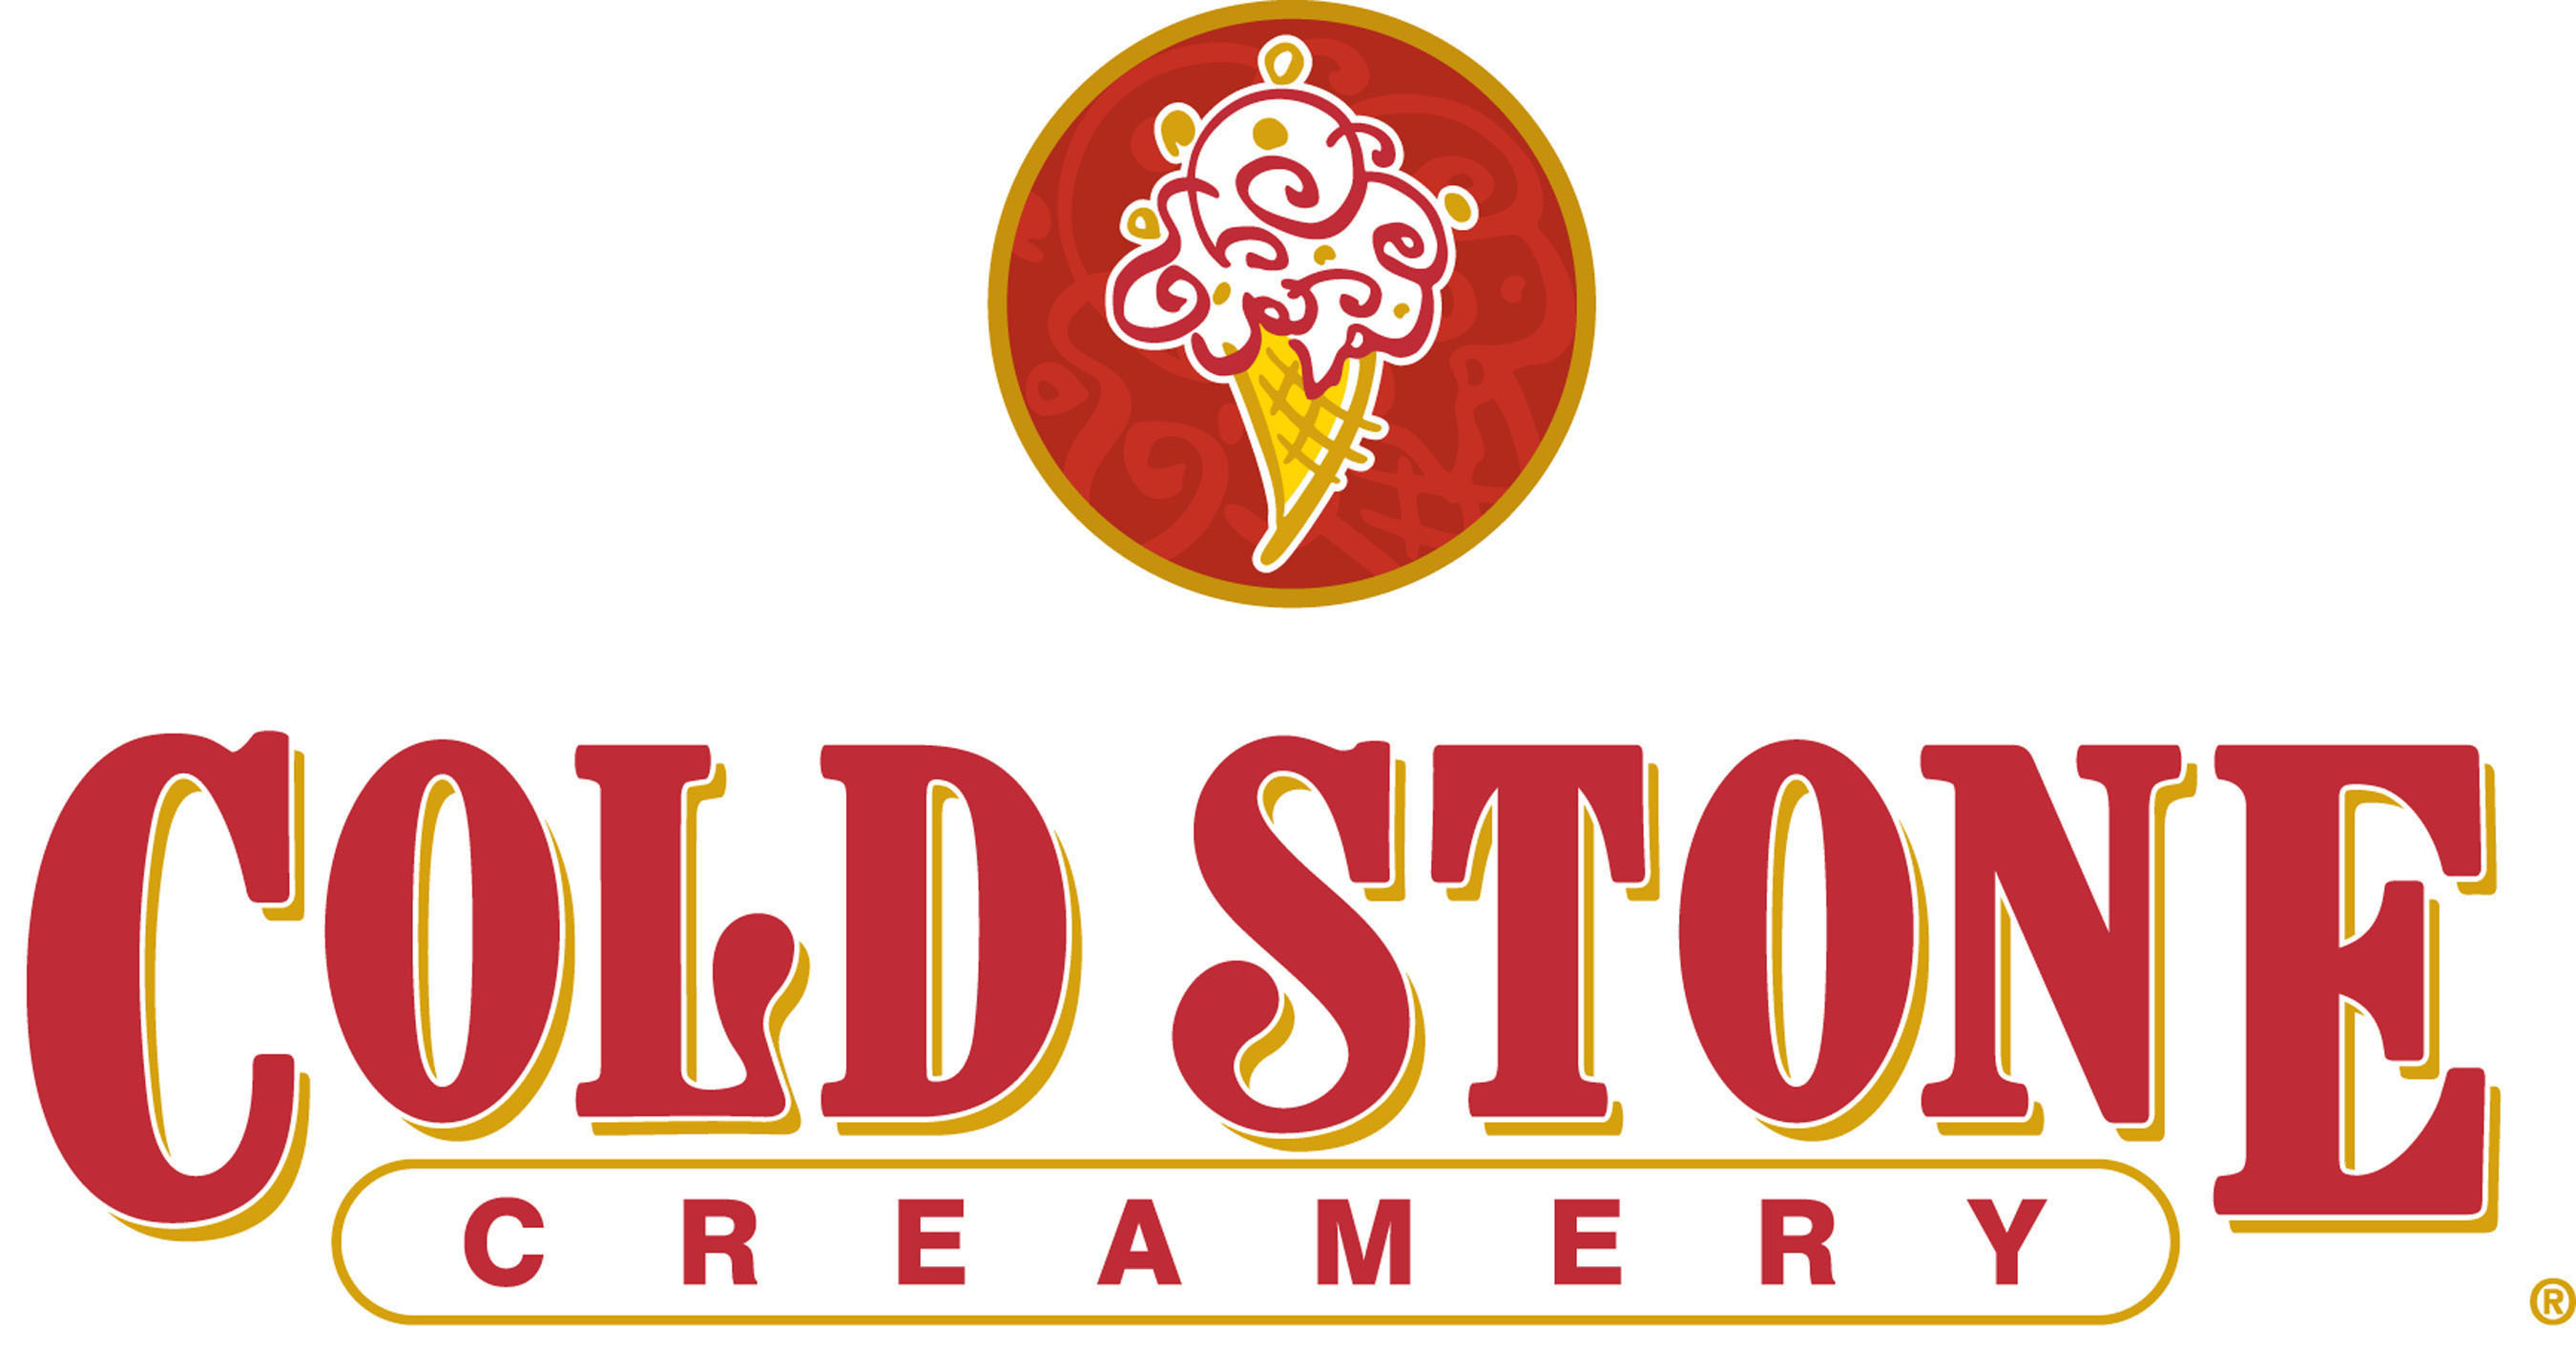 Cold Stone Creamery delivers The Ultimate Ice Cream Experience(r) through a community of franchisees who are passionate about ice cream. The secret recipe for smooth and creamy ice cream is handcrafted fresh daily in each store, and then customized by combining a variety of mix-ins on a frozen granite stone. Headquartered in Scottsdale, Ariz., Cold Stone Creamery is a subsidiary of Kahala Brands, one of the fastest growing franchising companies in the world. For more information about Cold Stone Creamery, visit www.ColdStoneCreamery.com